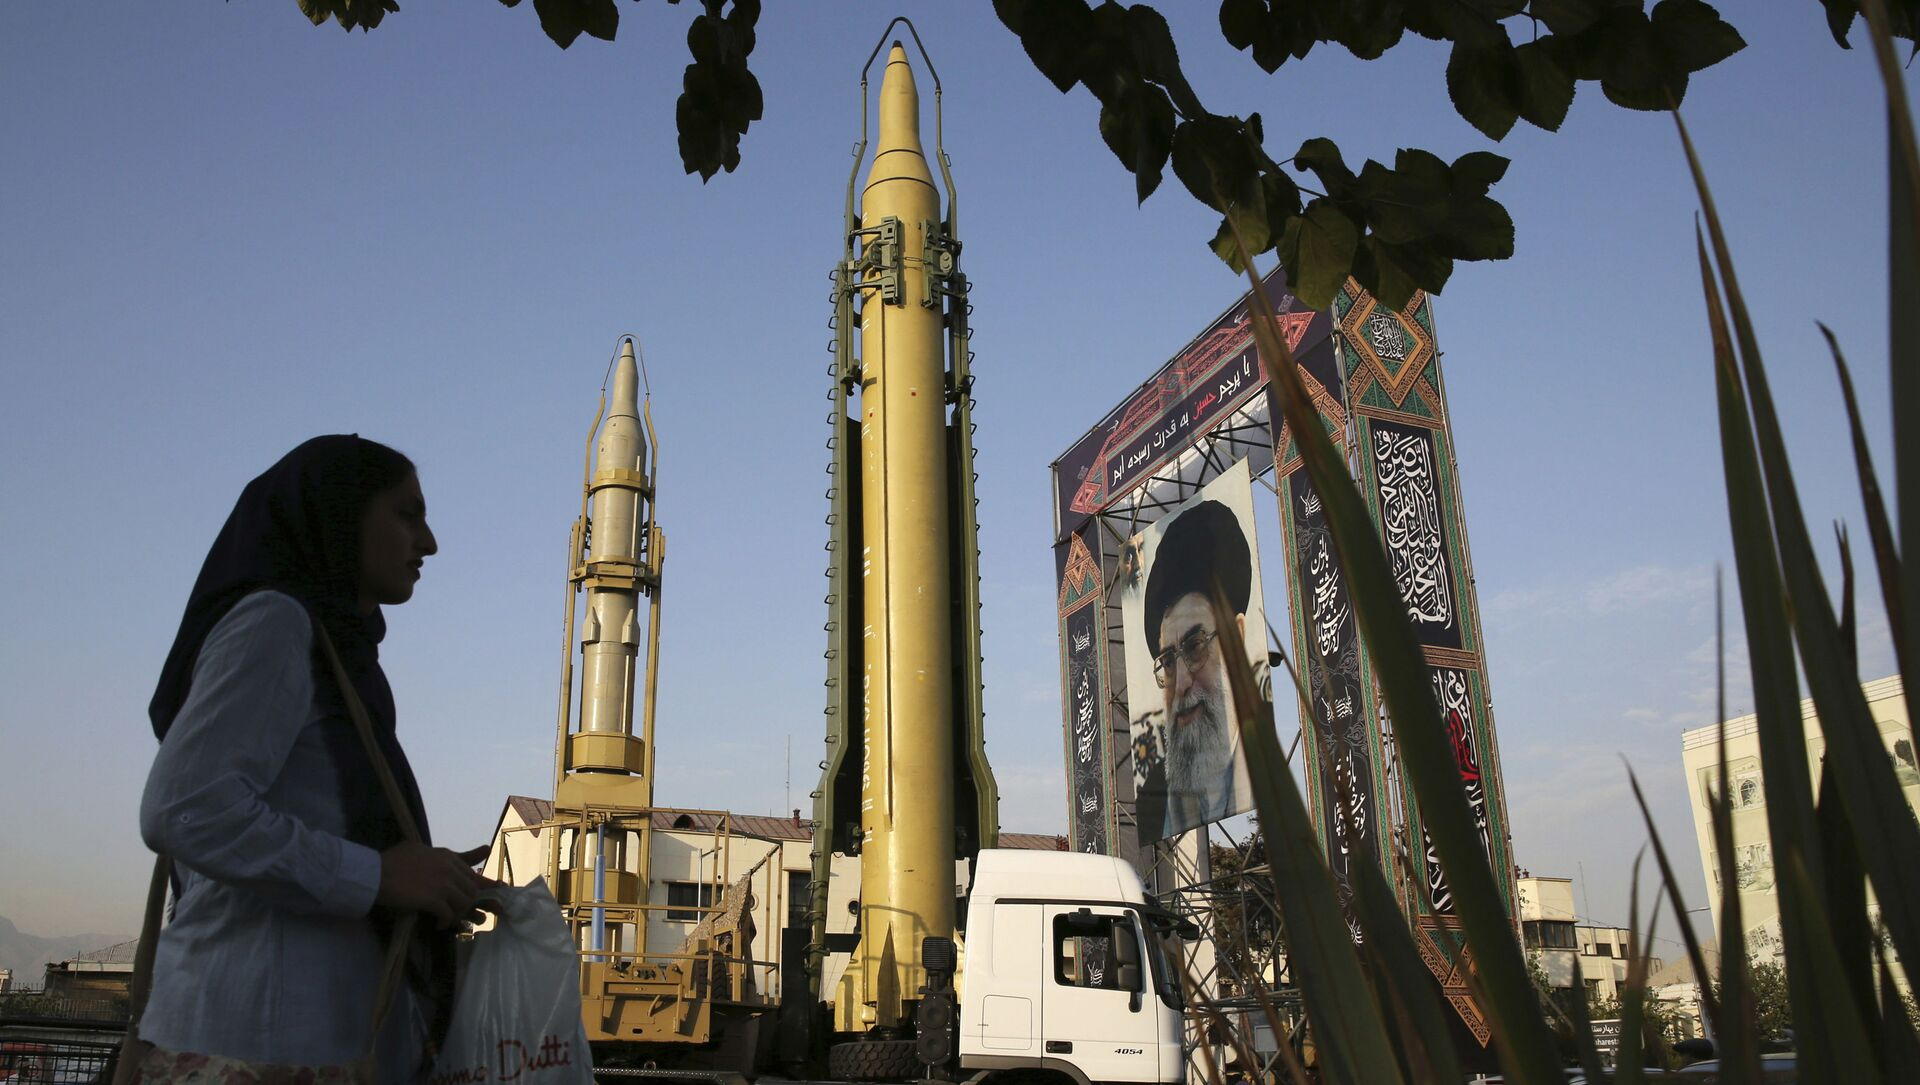 In this Sept. 24, 2017 file photo, surface-to-surface missiles and a portrait of the Iranian Supreme Leader Ayatollah Ali Khamenei are displayed by the Revolutionary Guard in an exhibition marking the anniversary of outset of the 1980s Iran-Iraq war, at Baharestan Square in Tehran, Iran. - Sputnik International, 1920, 27.07.2021